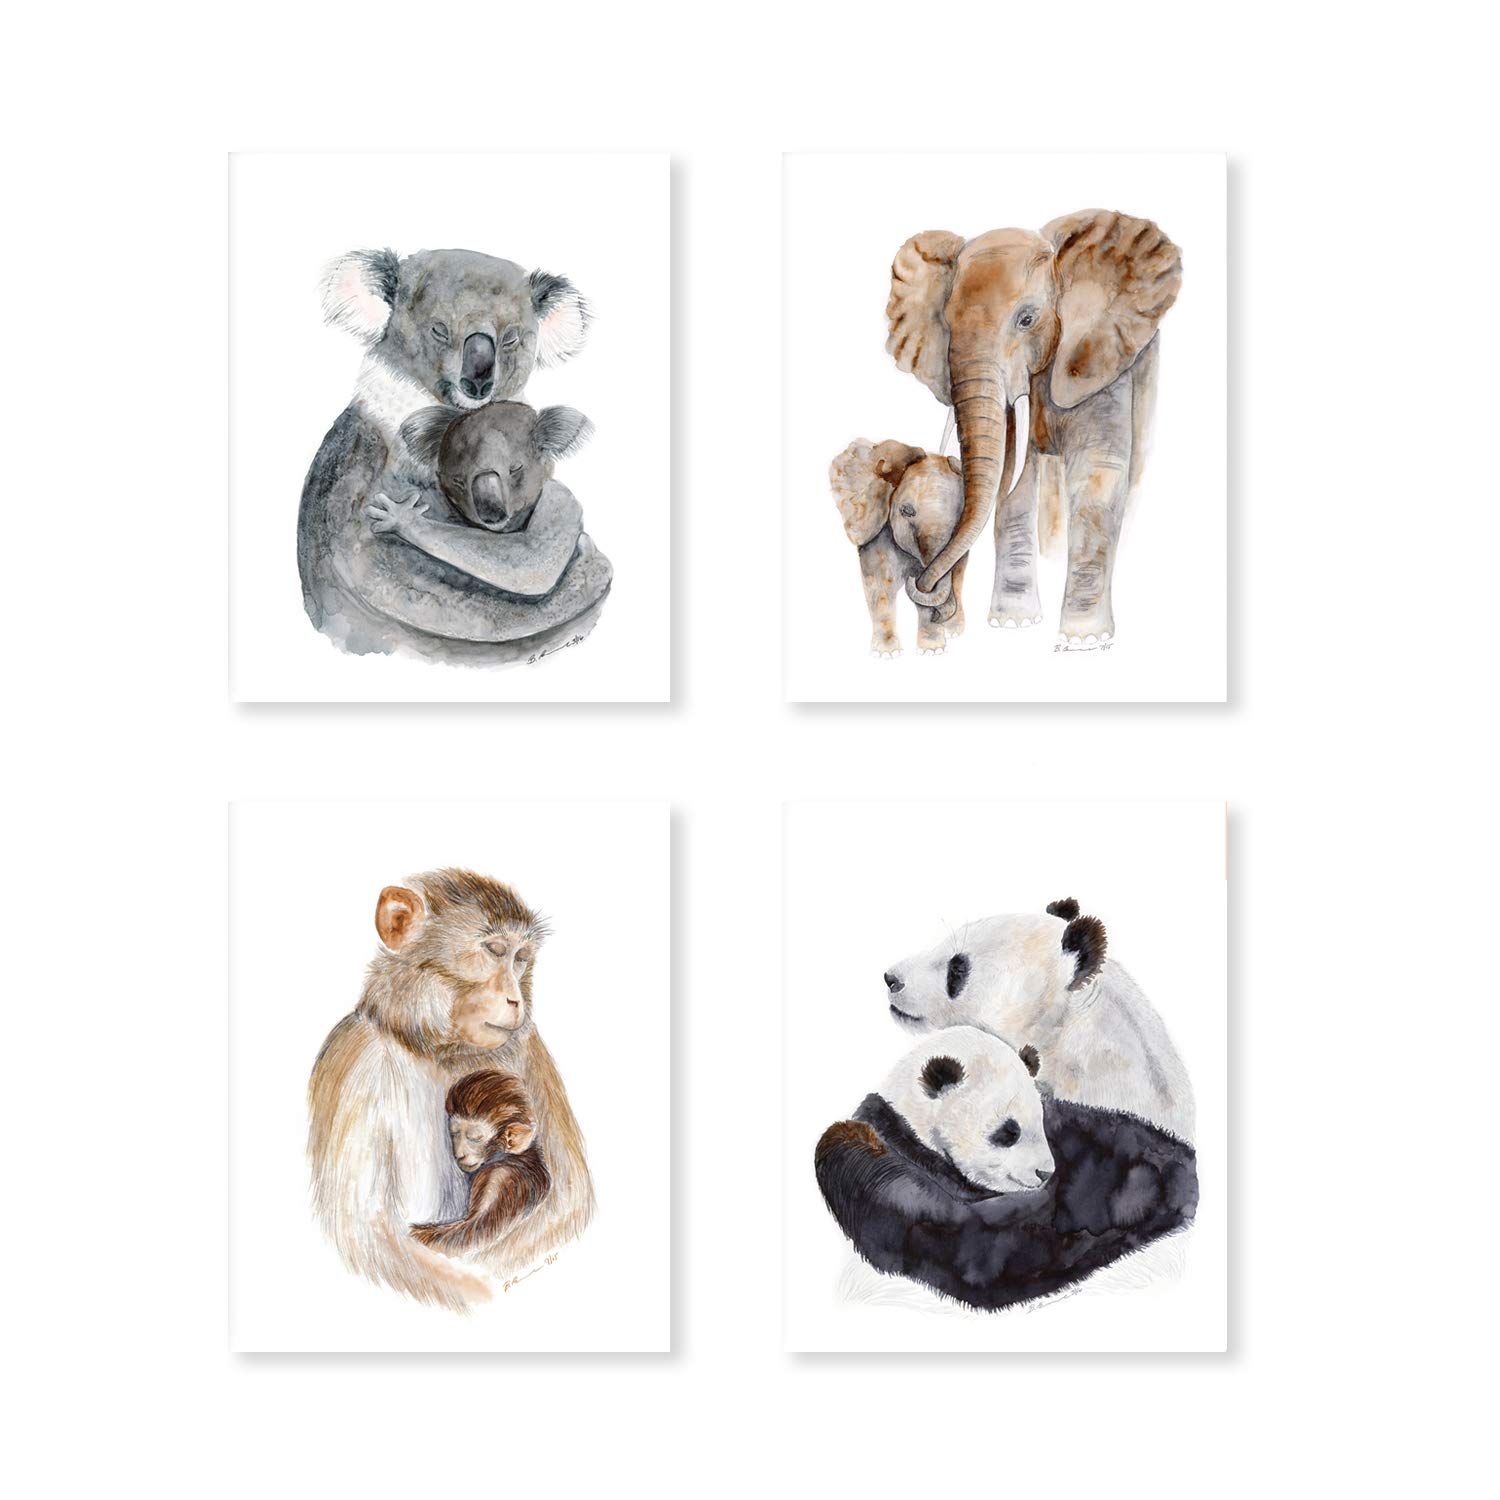 Amazon Com Set Of 4 Jungle Animal Nursery Prints Mom And Baby Animal Watercolor Art Baby Room Decor Elephant Monkeys Koala And Panda Selection Of Alternate Animals And Sizes Available Handmade